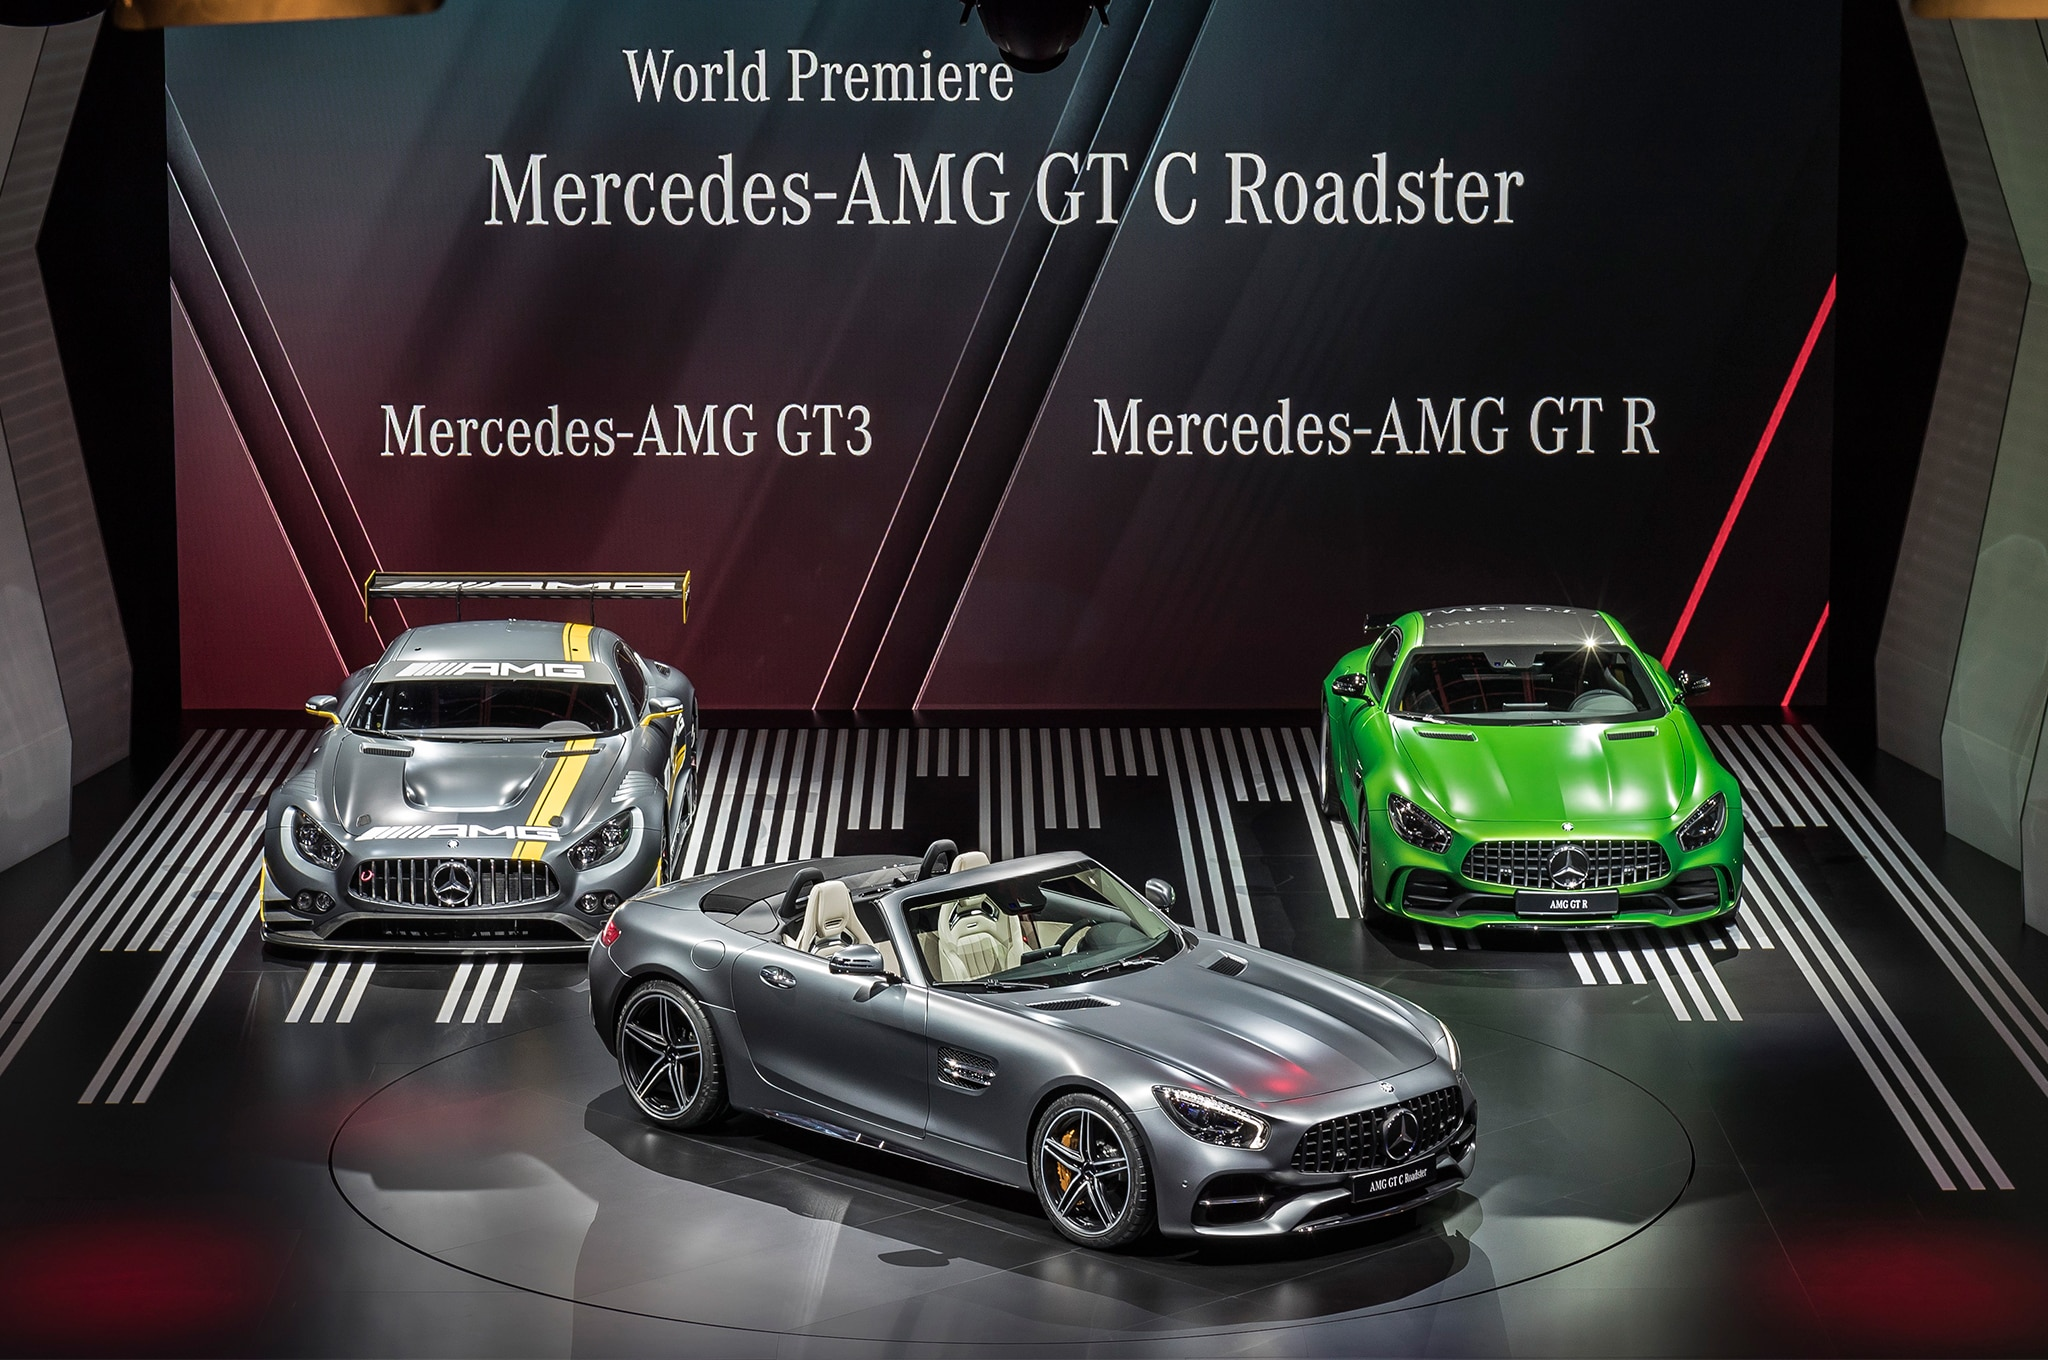 2018 Mercedes AMG GT C Roadster Mercedes AMG GT R And Mercedes AMG GT 3